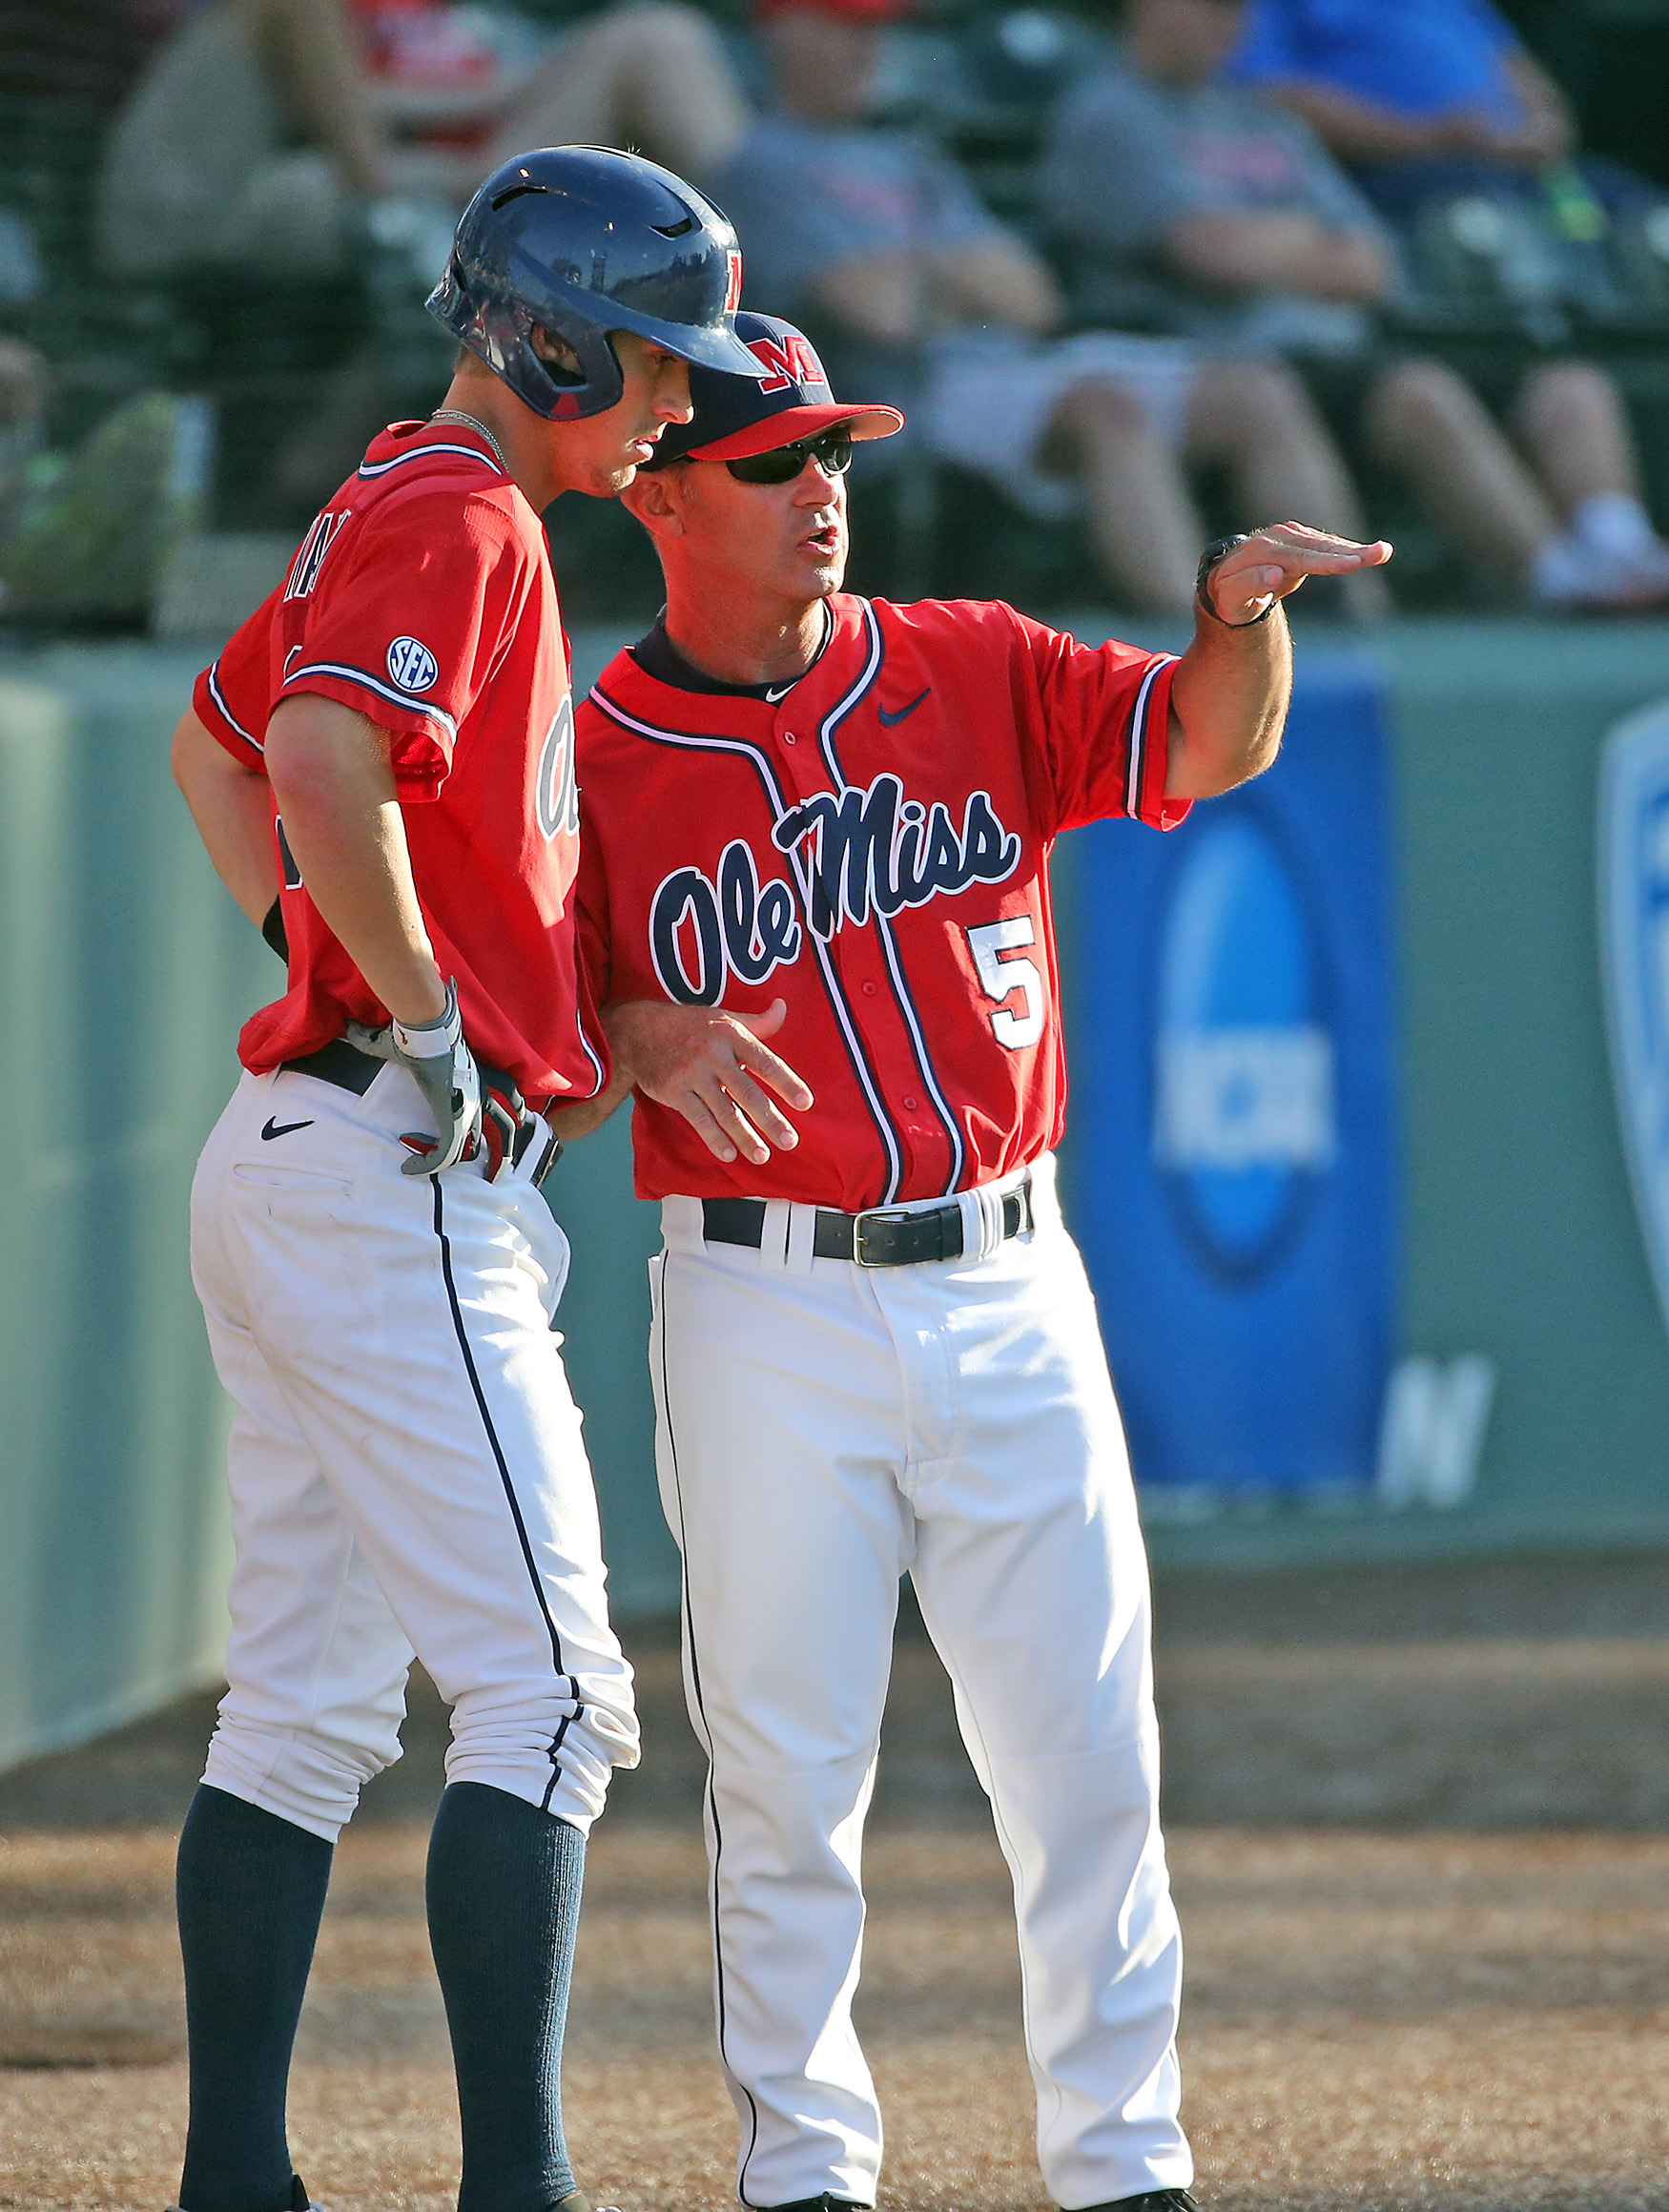 best service 9ad44 34785 Ole Miss Baseball Announces 2016 Schedule - Ole Miss Athletics